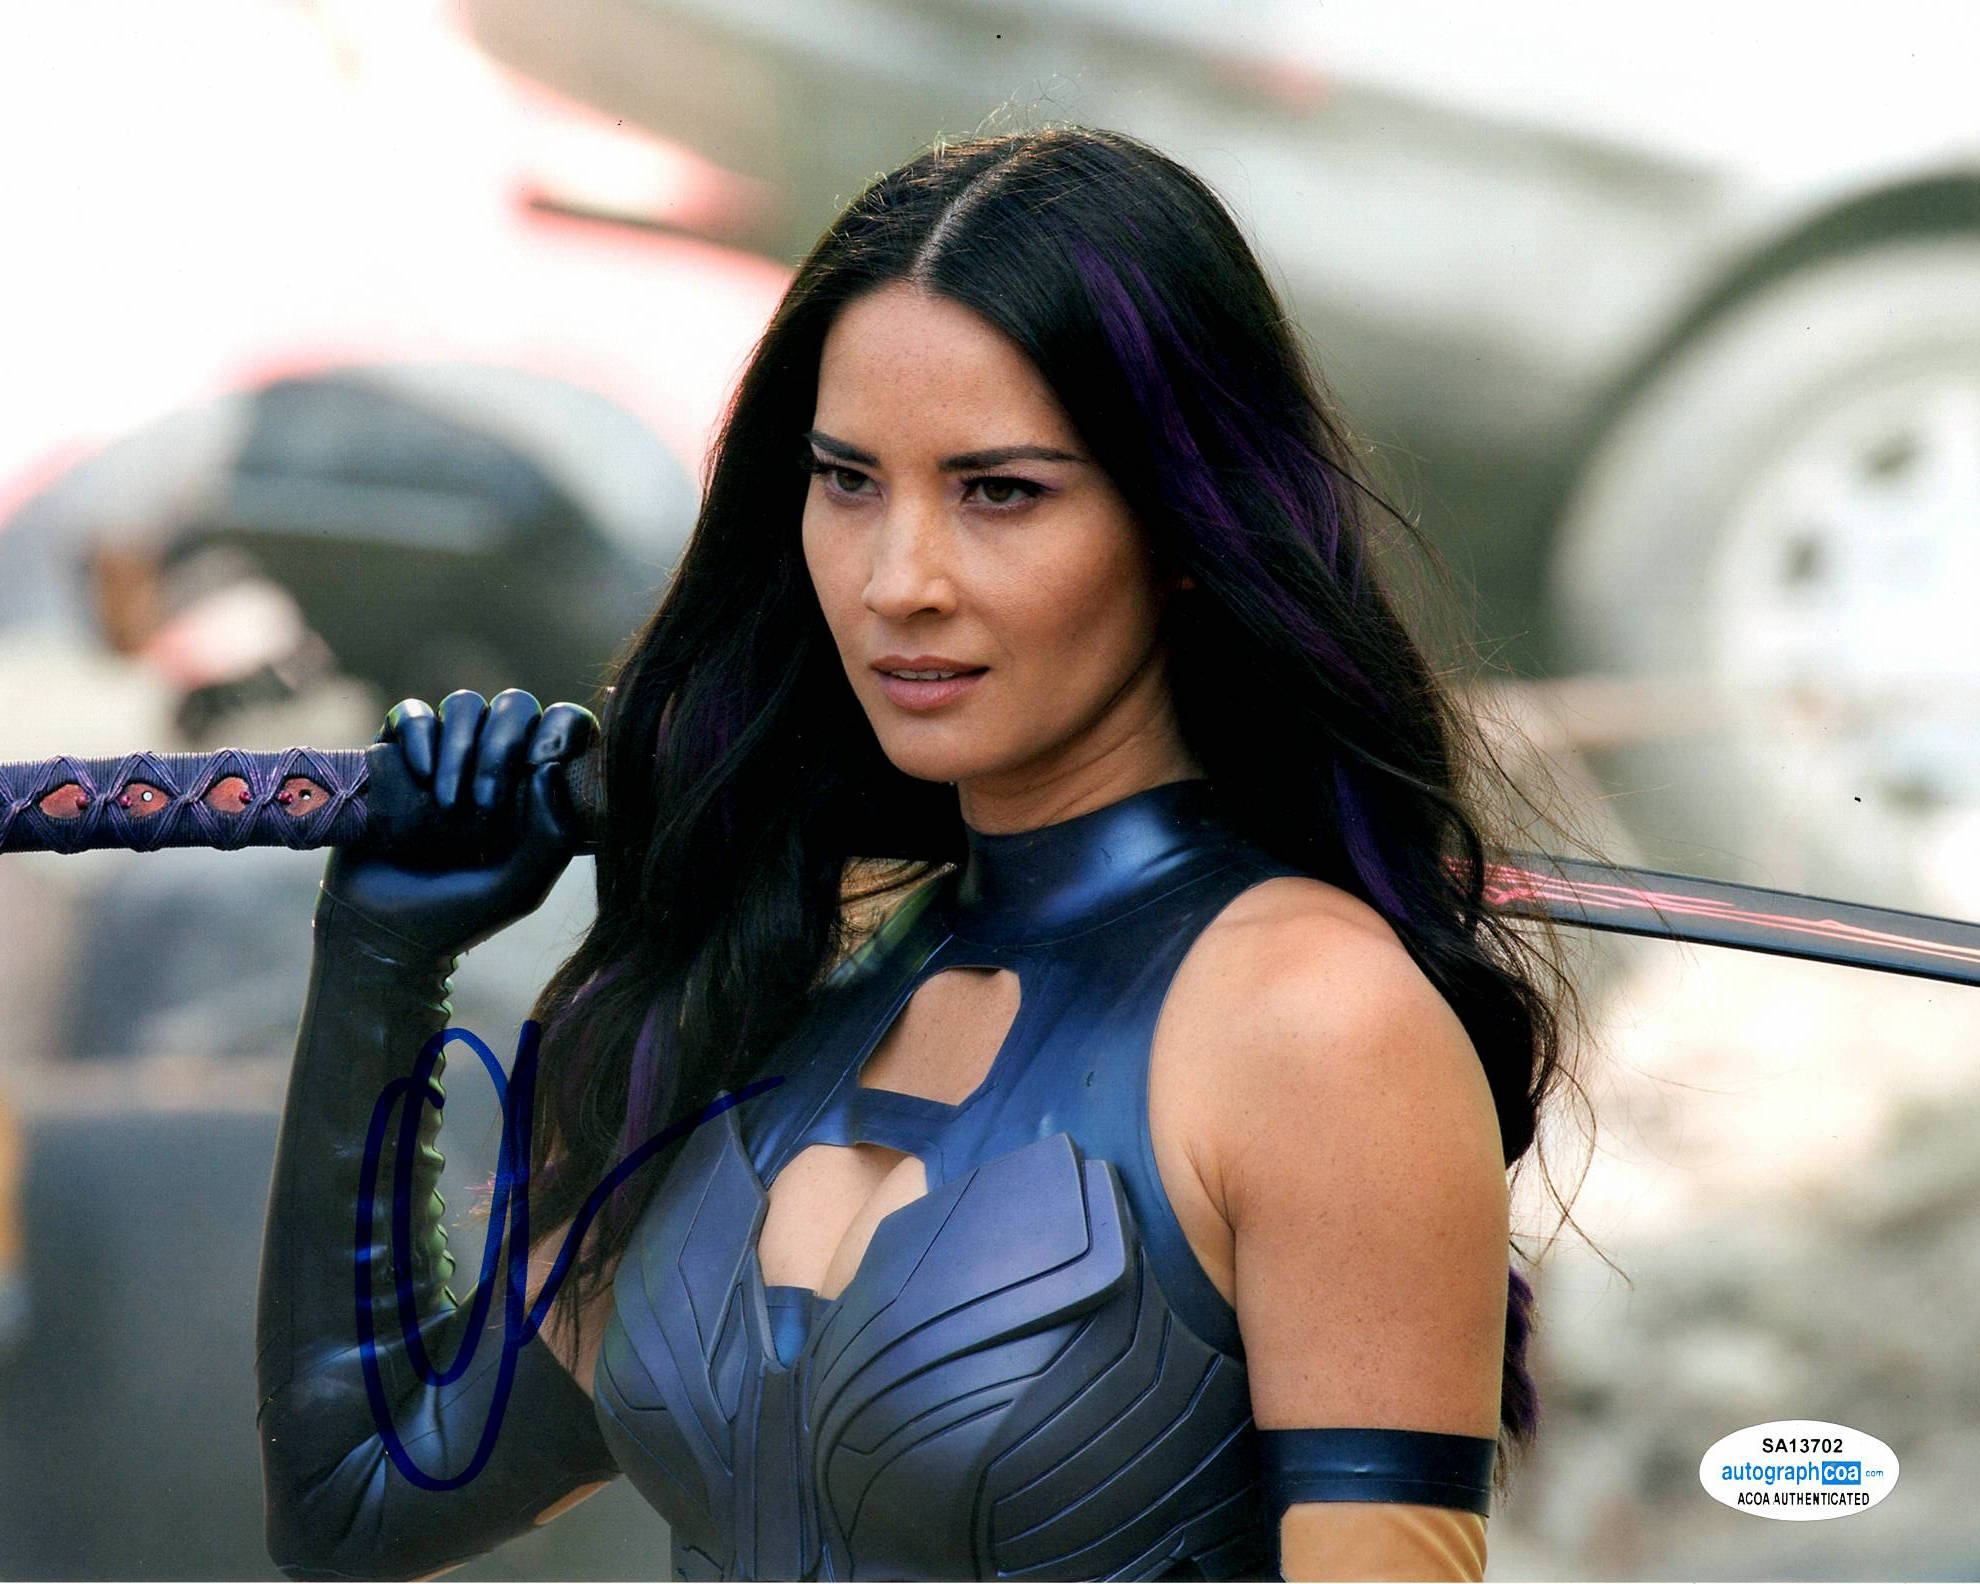 Olivia Munn Sexy X-men Signed Autograph 8x10 Photo #5 - Outlaw Hobbies Authentic Autographs